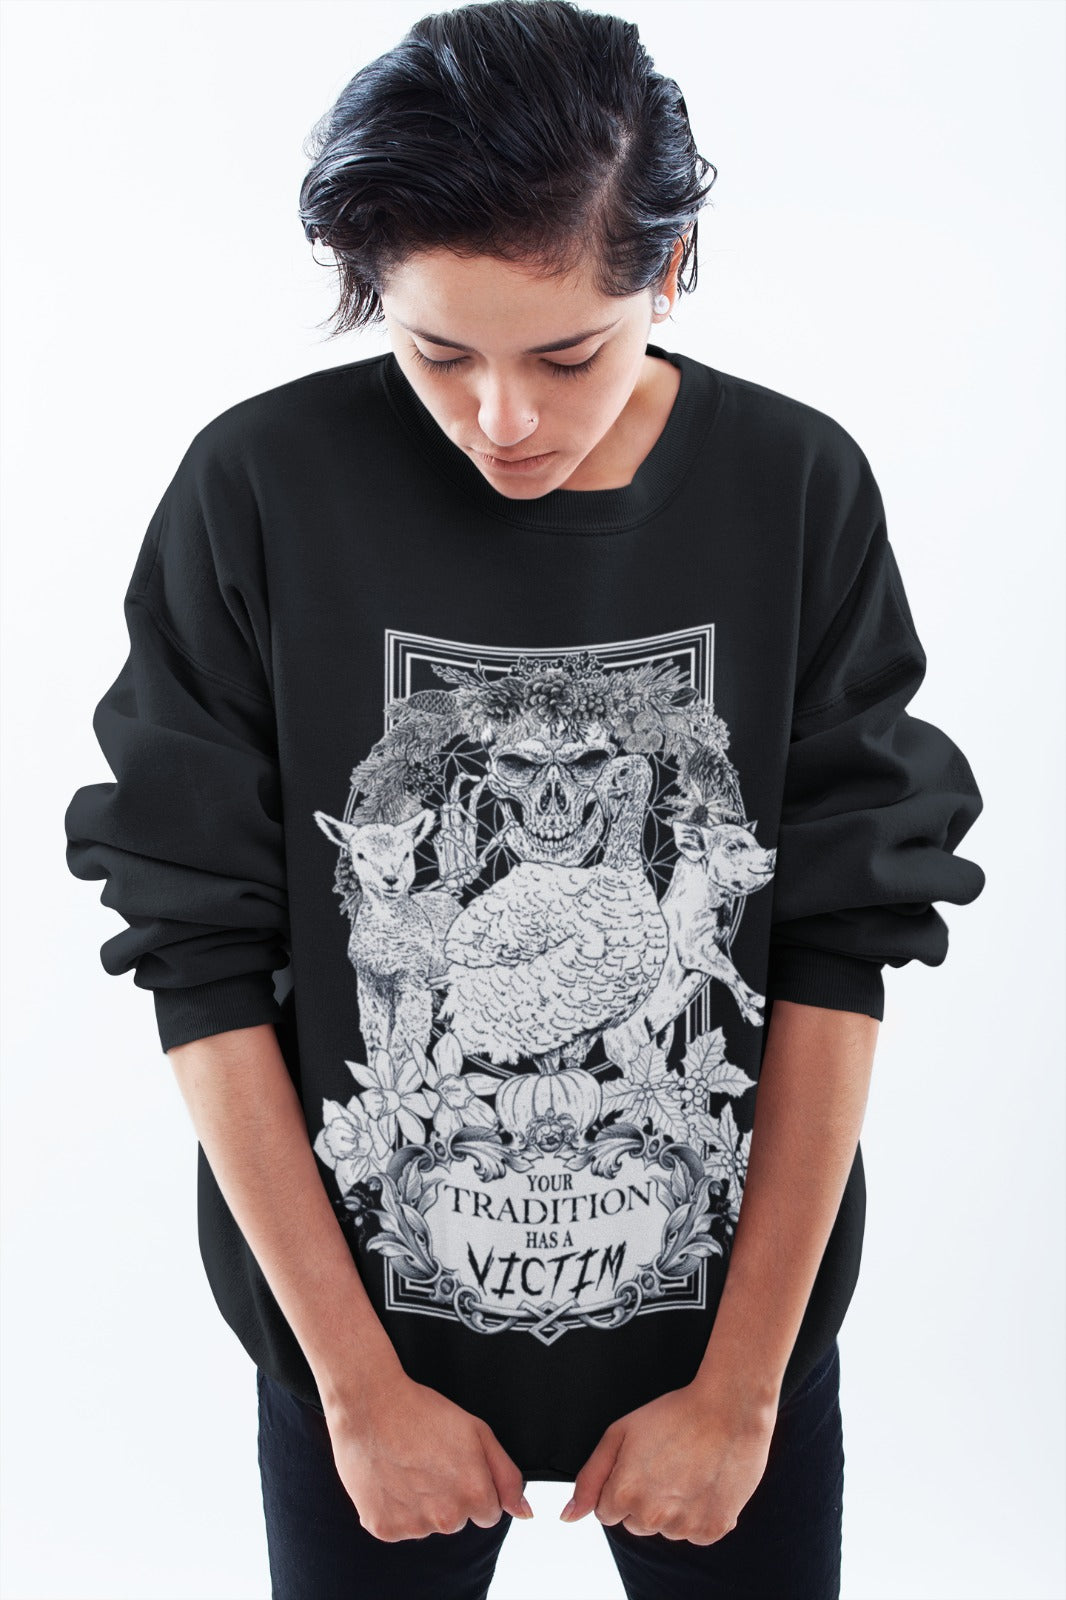 'Your Tradition Has a Victim' Unisex 100% Organic Cotton Sweater - Limited Run